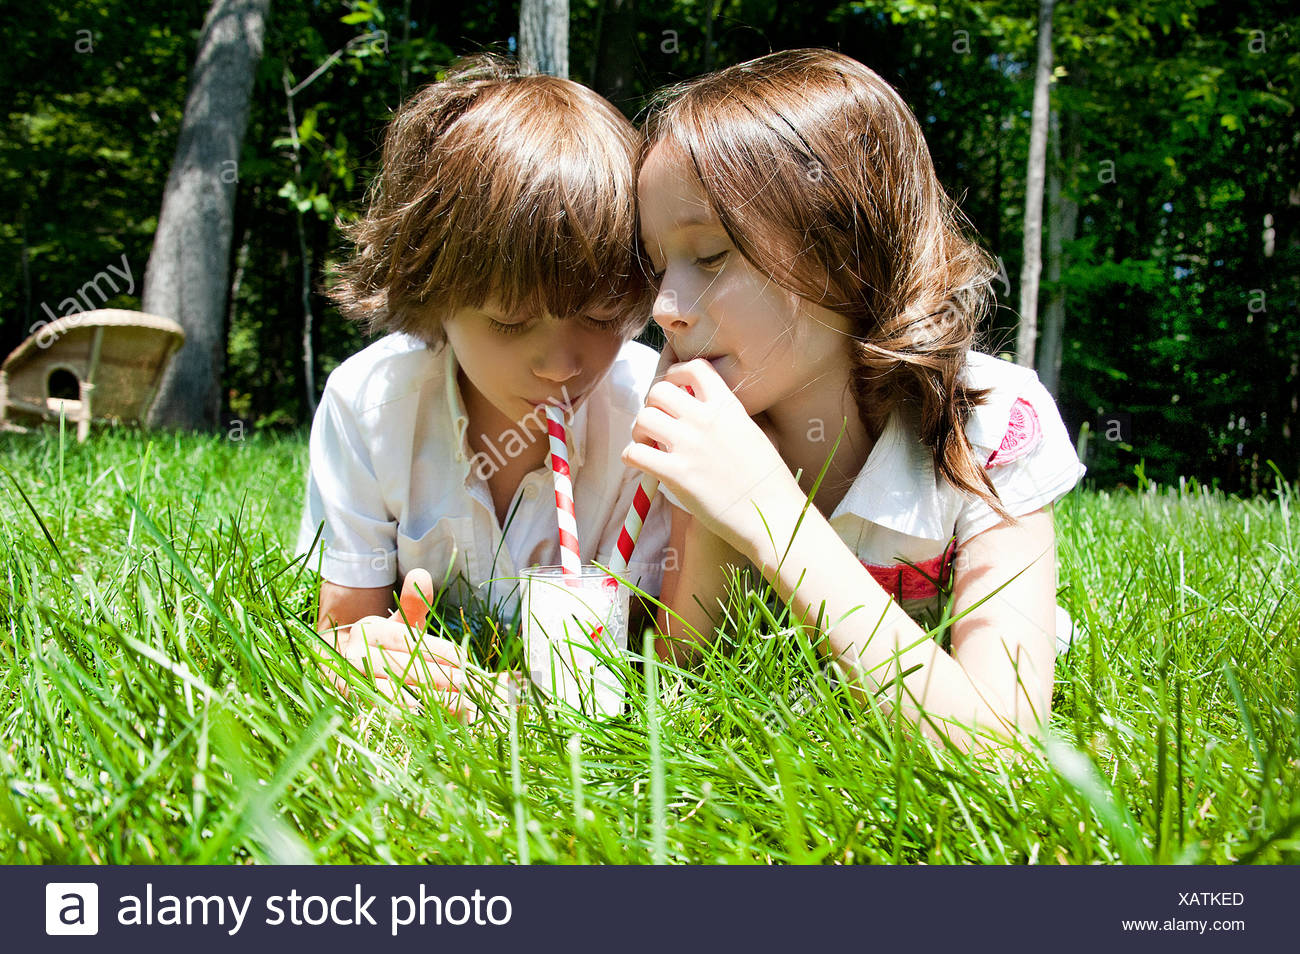 Brother and sister in woods sharing a milkshake - Stock Image